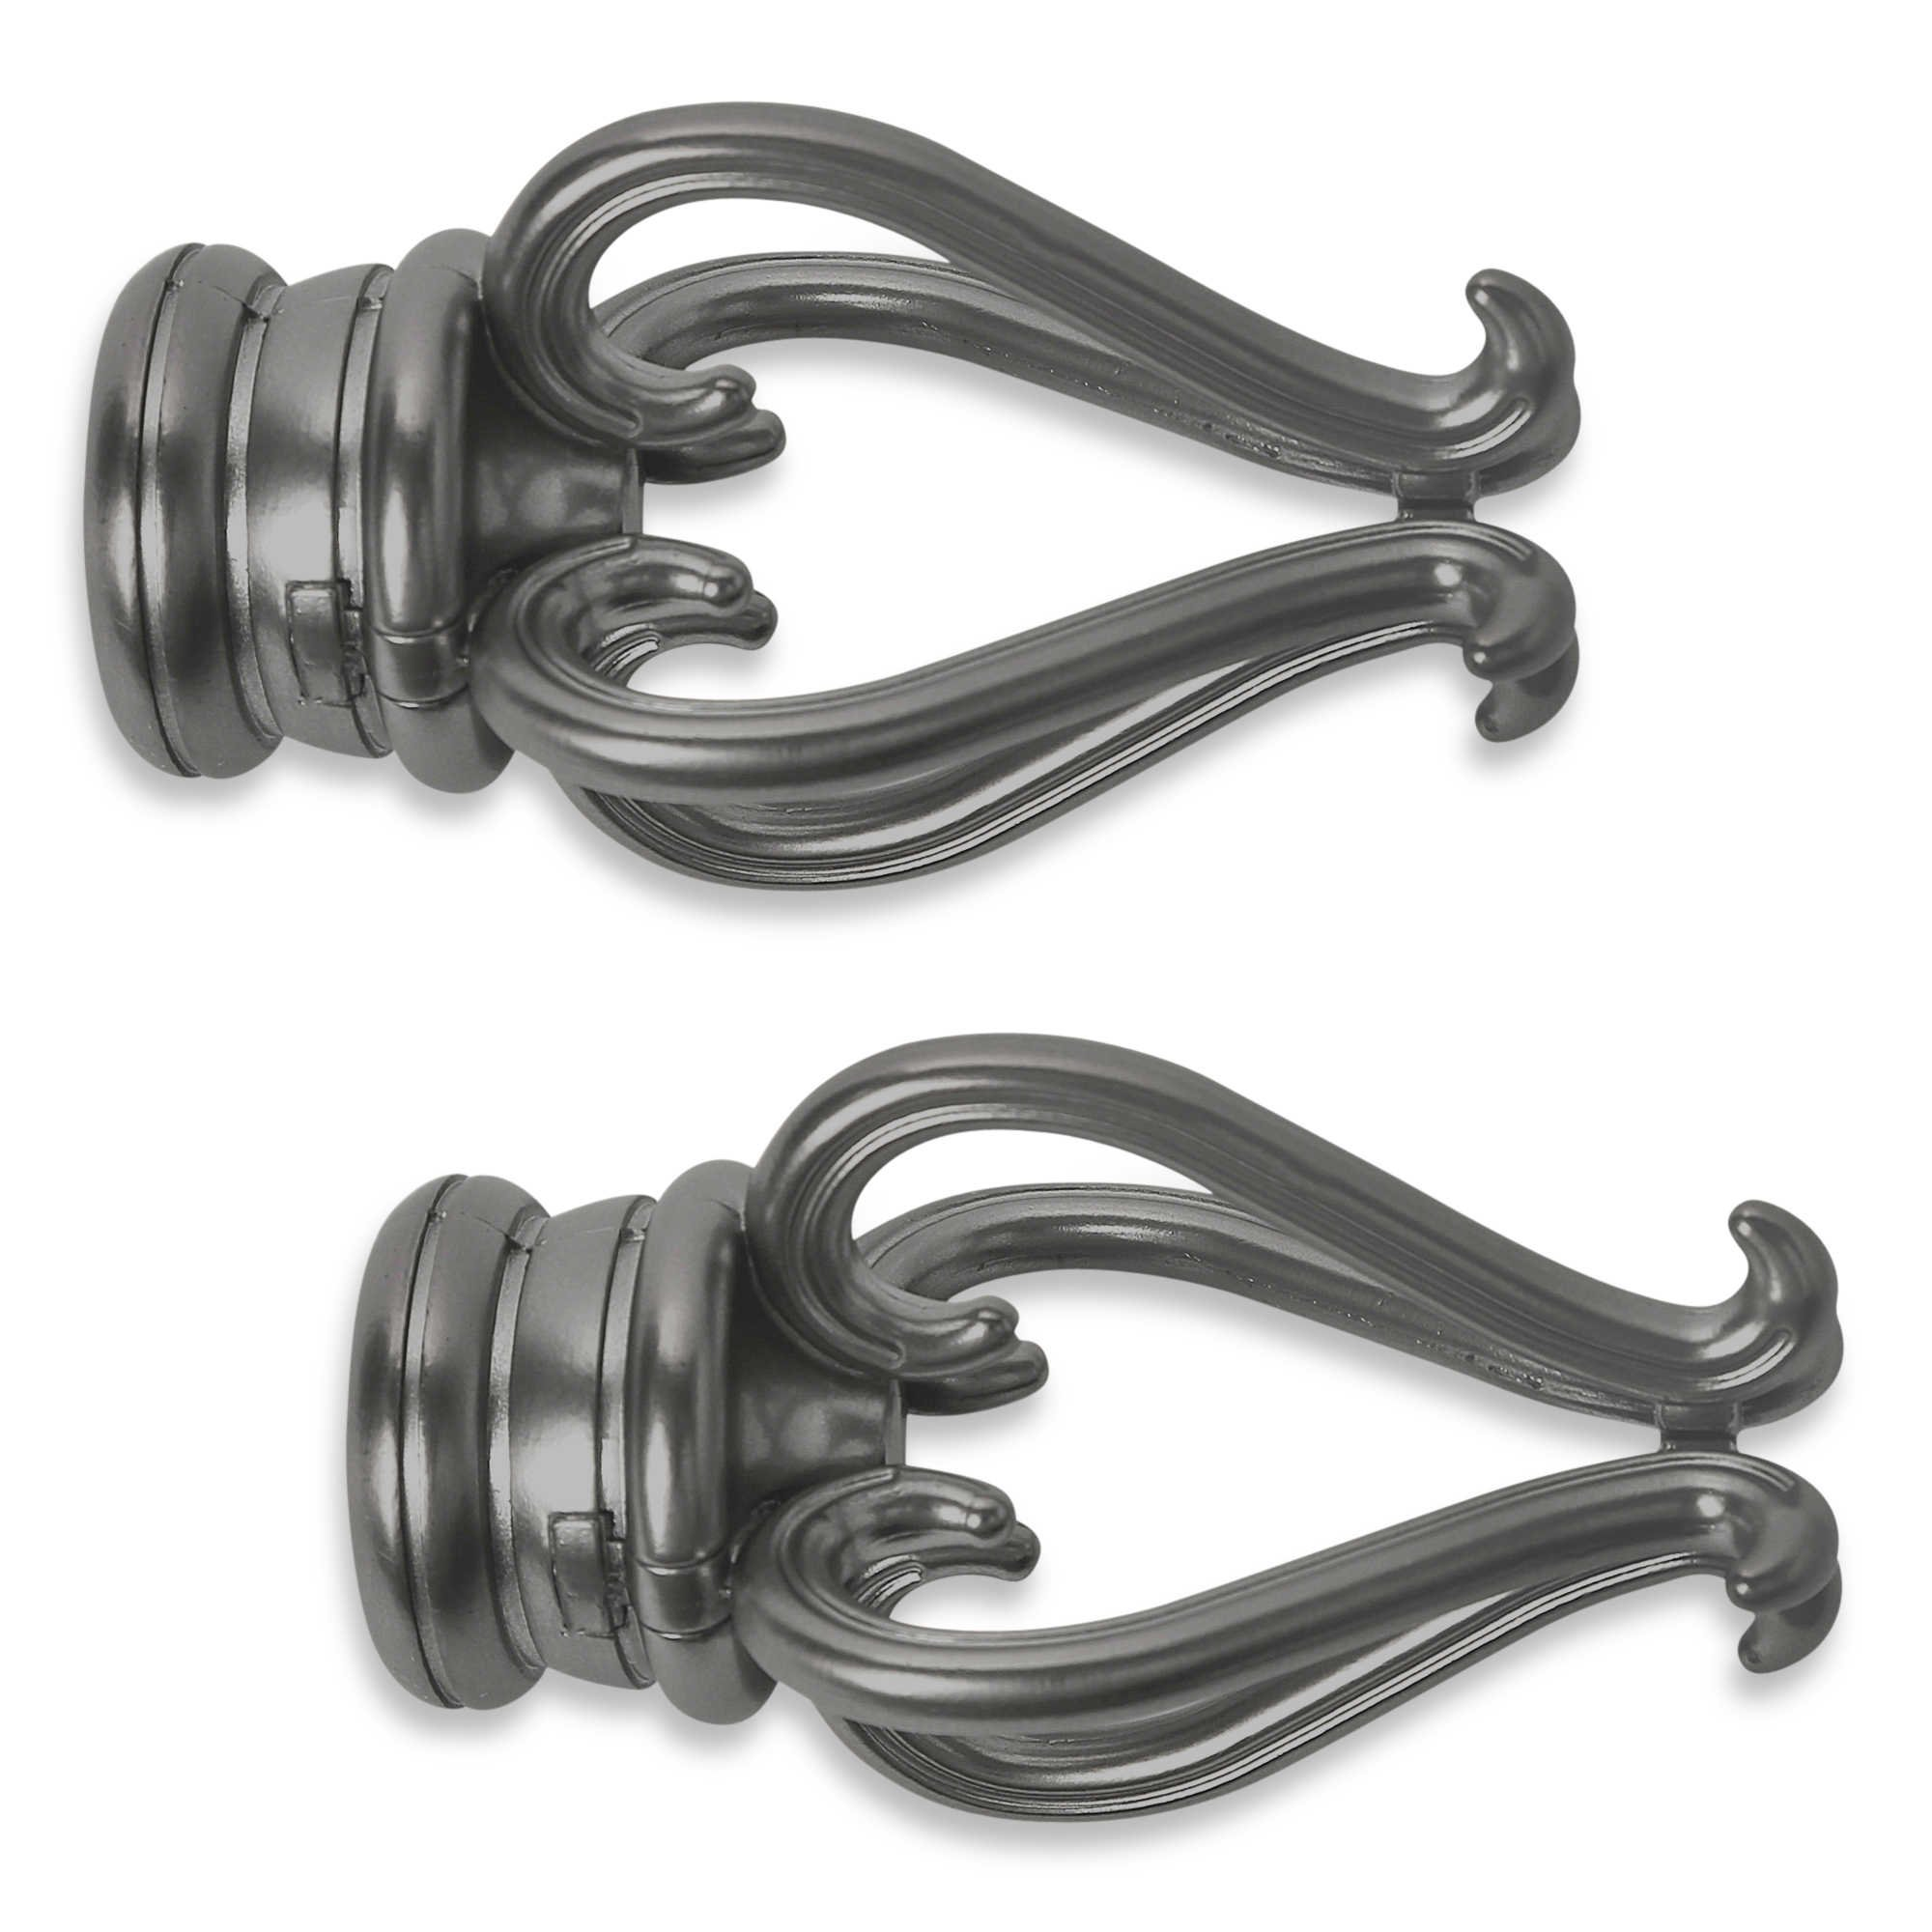 Cambria Premier Complete Finial in Graphite (Set of 2) (FLORENTINE)